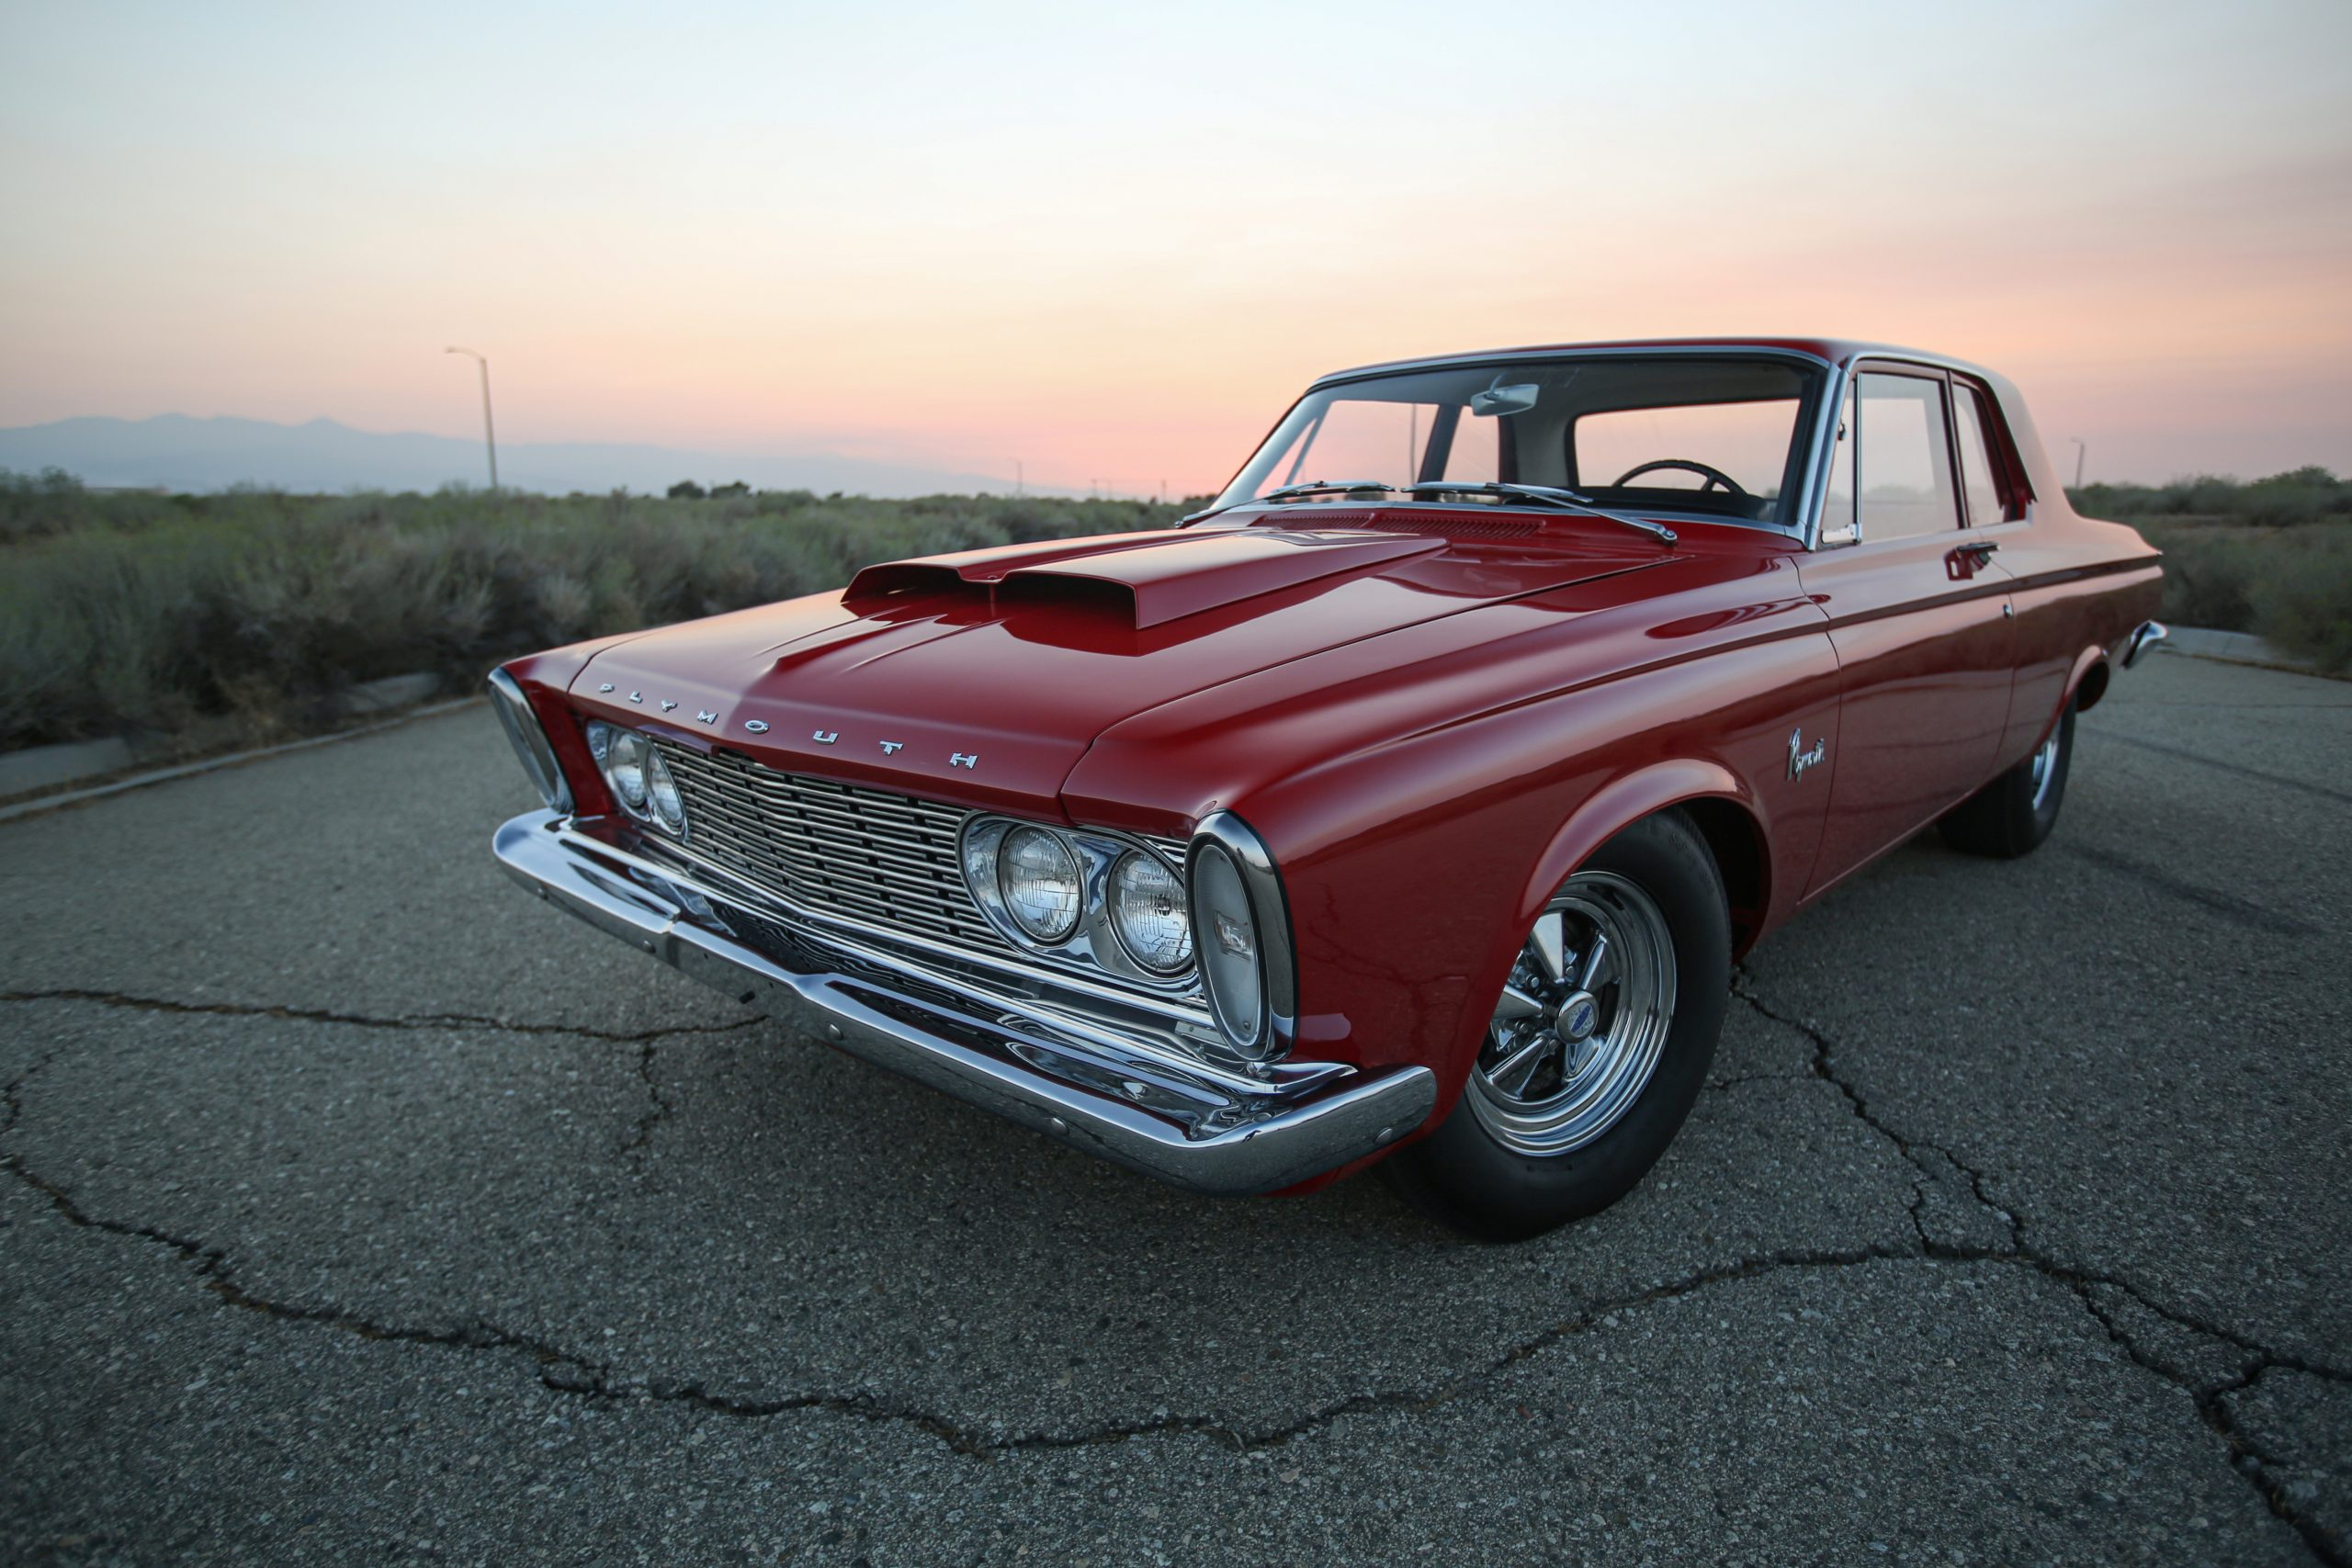 1963 Plymouth 426 Max Wedge lightweight front three-quarter close